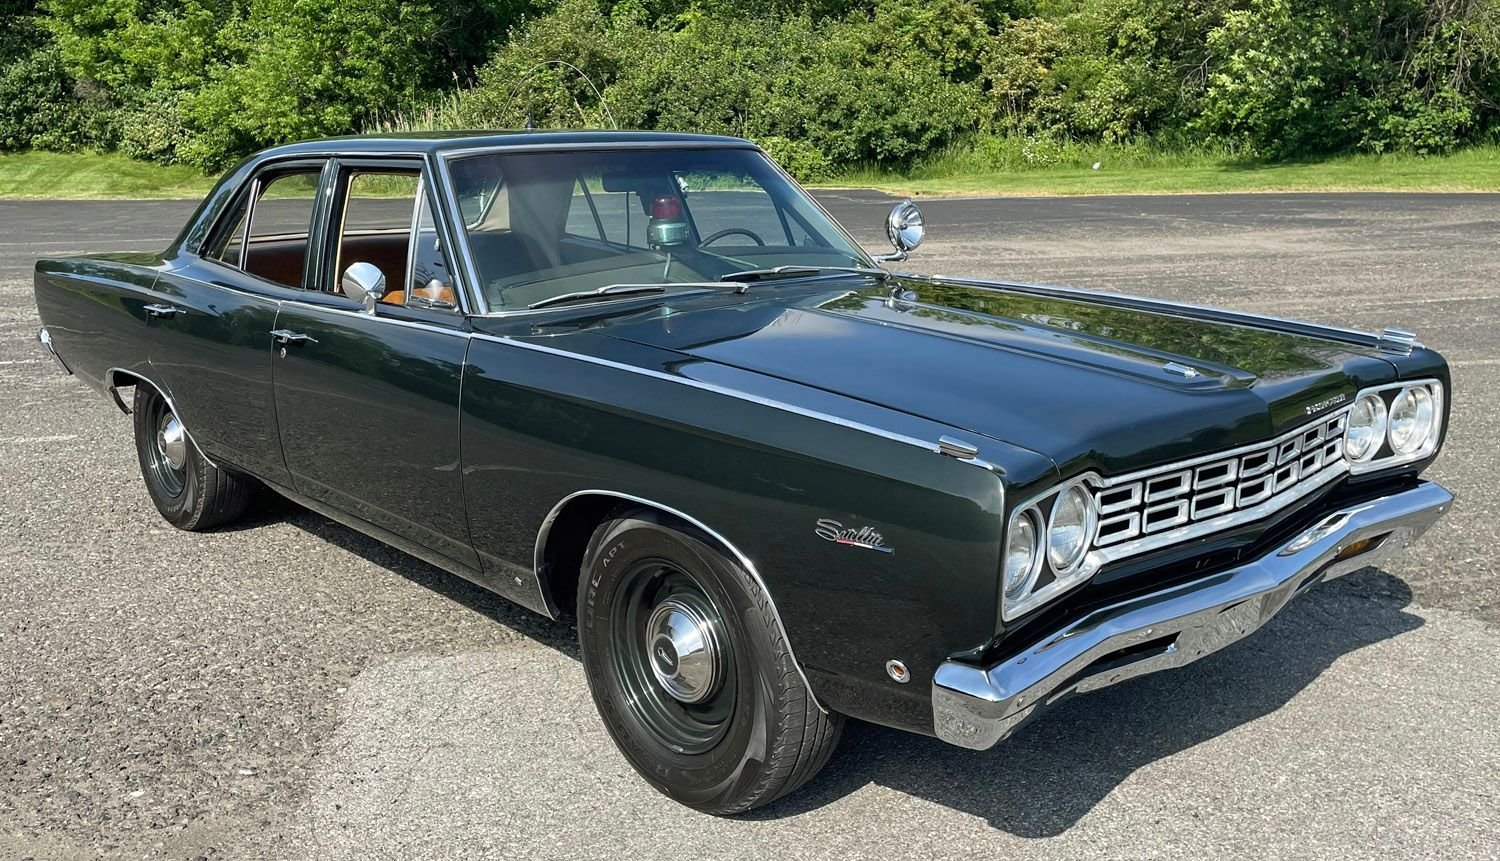 1968 plymouth belvedere police car